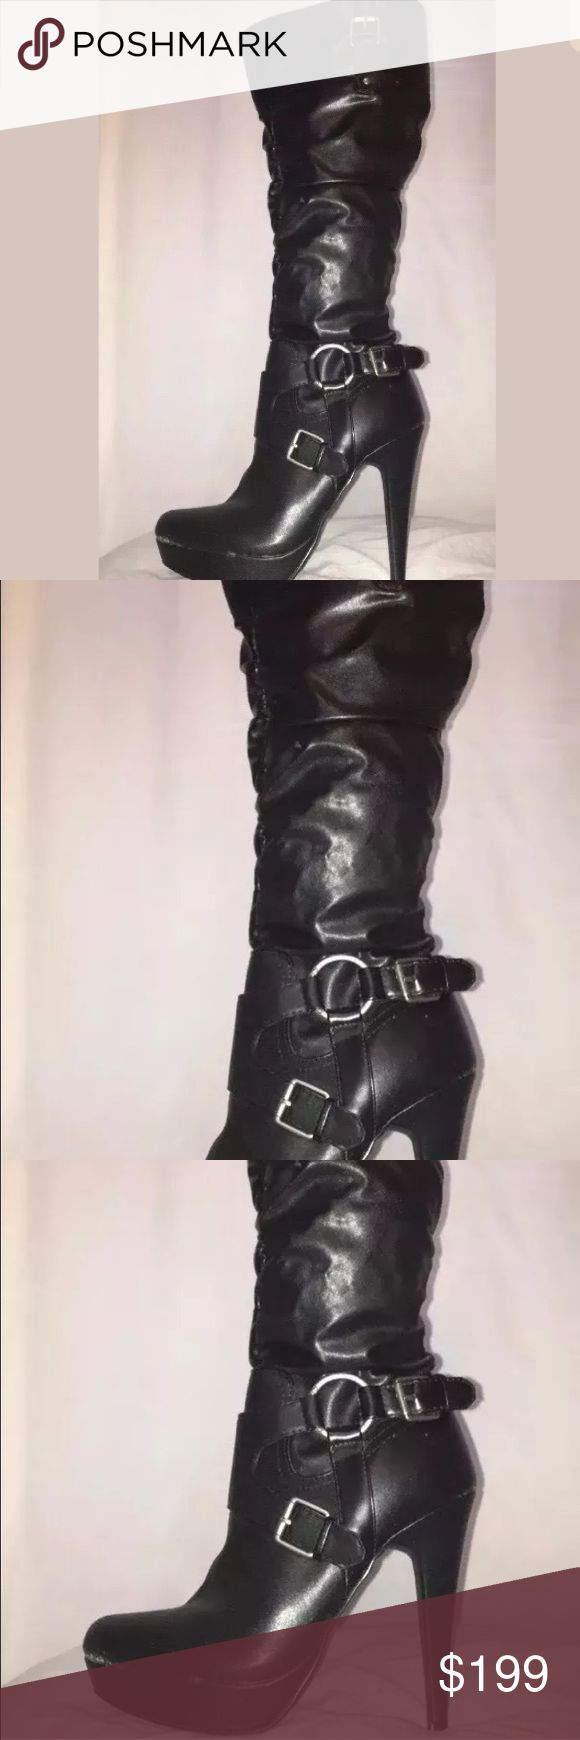 ❗️Guess ❗️High Heel Zipper up boots Sexy black high heel boots with buckles size 8M New Guess Shoes Heeled Boots